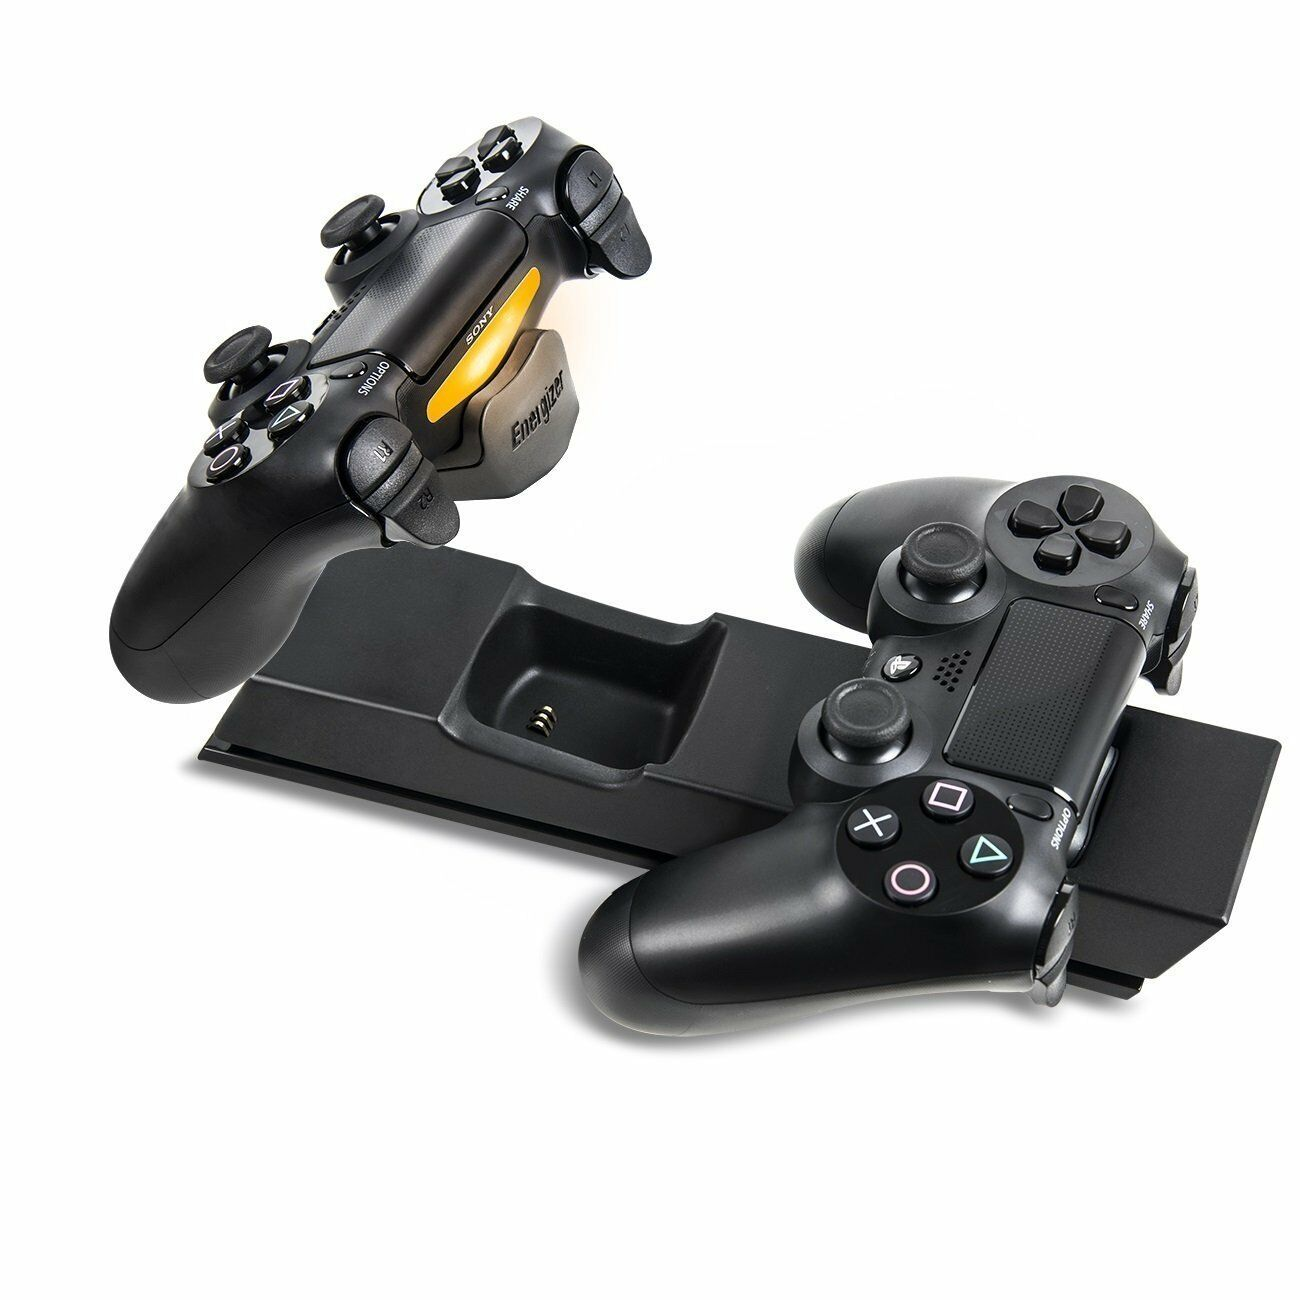 PDP Energizer 2x Extra Life Charge System Charger for DualShock 4 ...